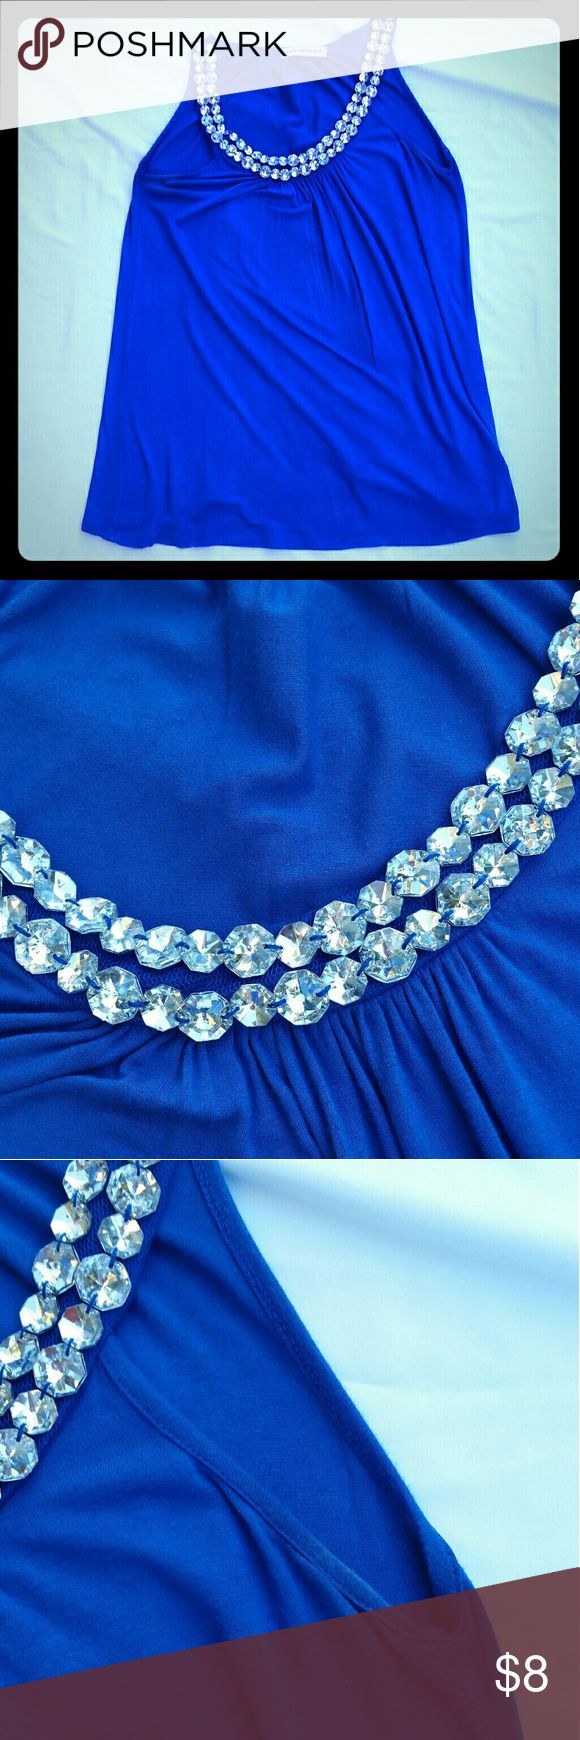 Body Central Royal Blue Sleeveless Top Gorgeous Royal Blue Cotton Top with Rhinestones around the neckline. Bedazzled embellished Juniors Women's Girls. ***there is some darkening under the arm area. Please look at picture Body Central Tops Blouses